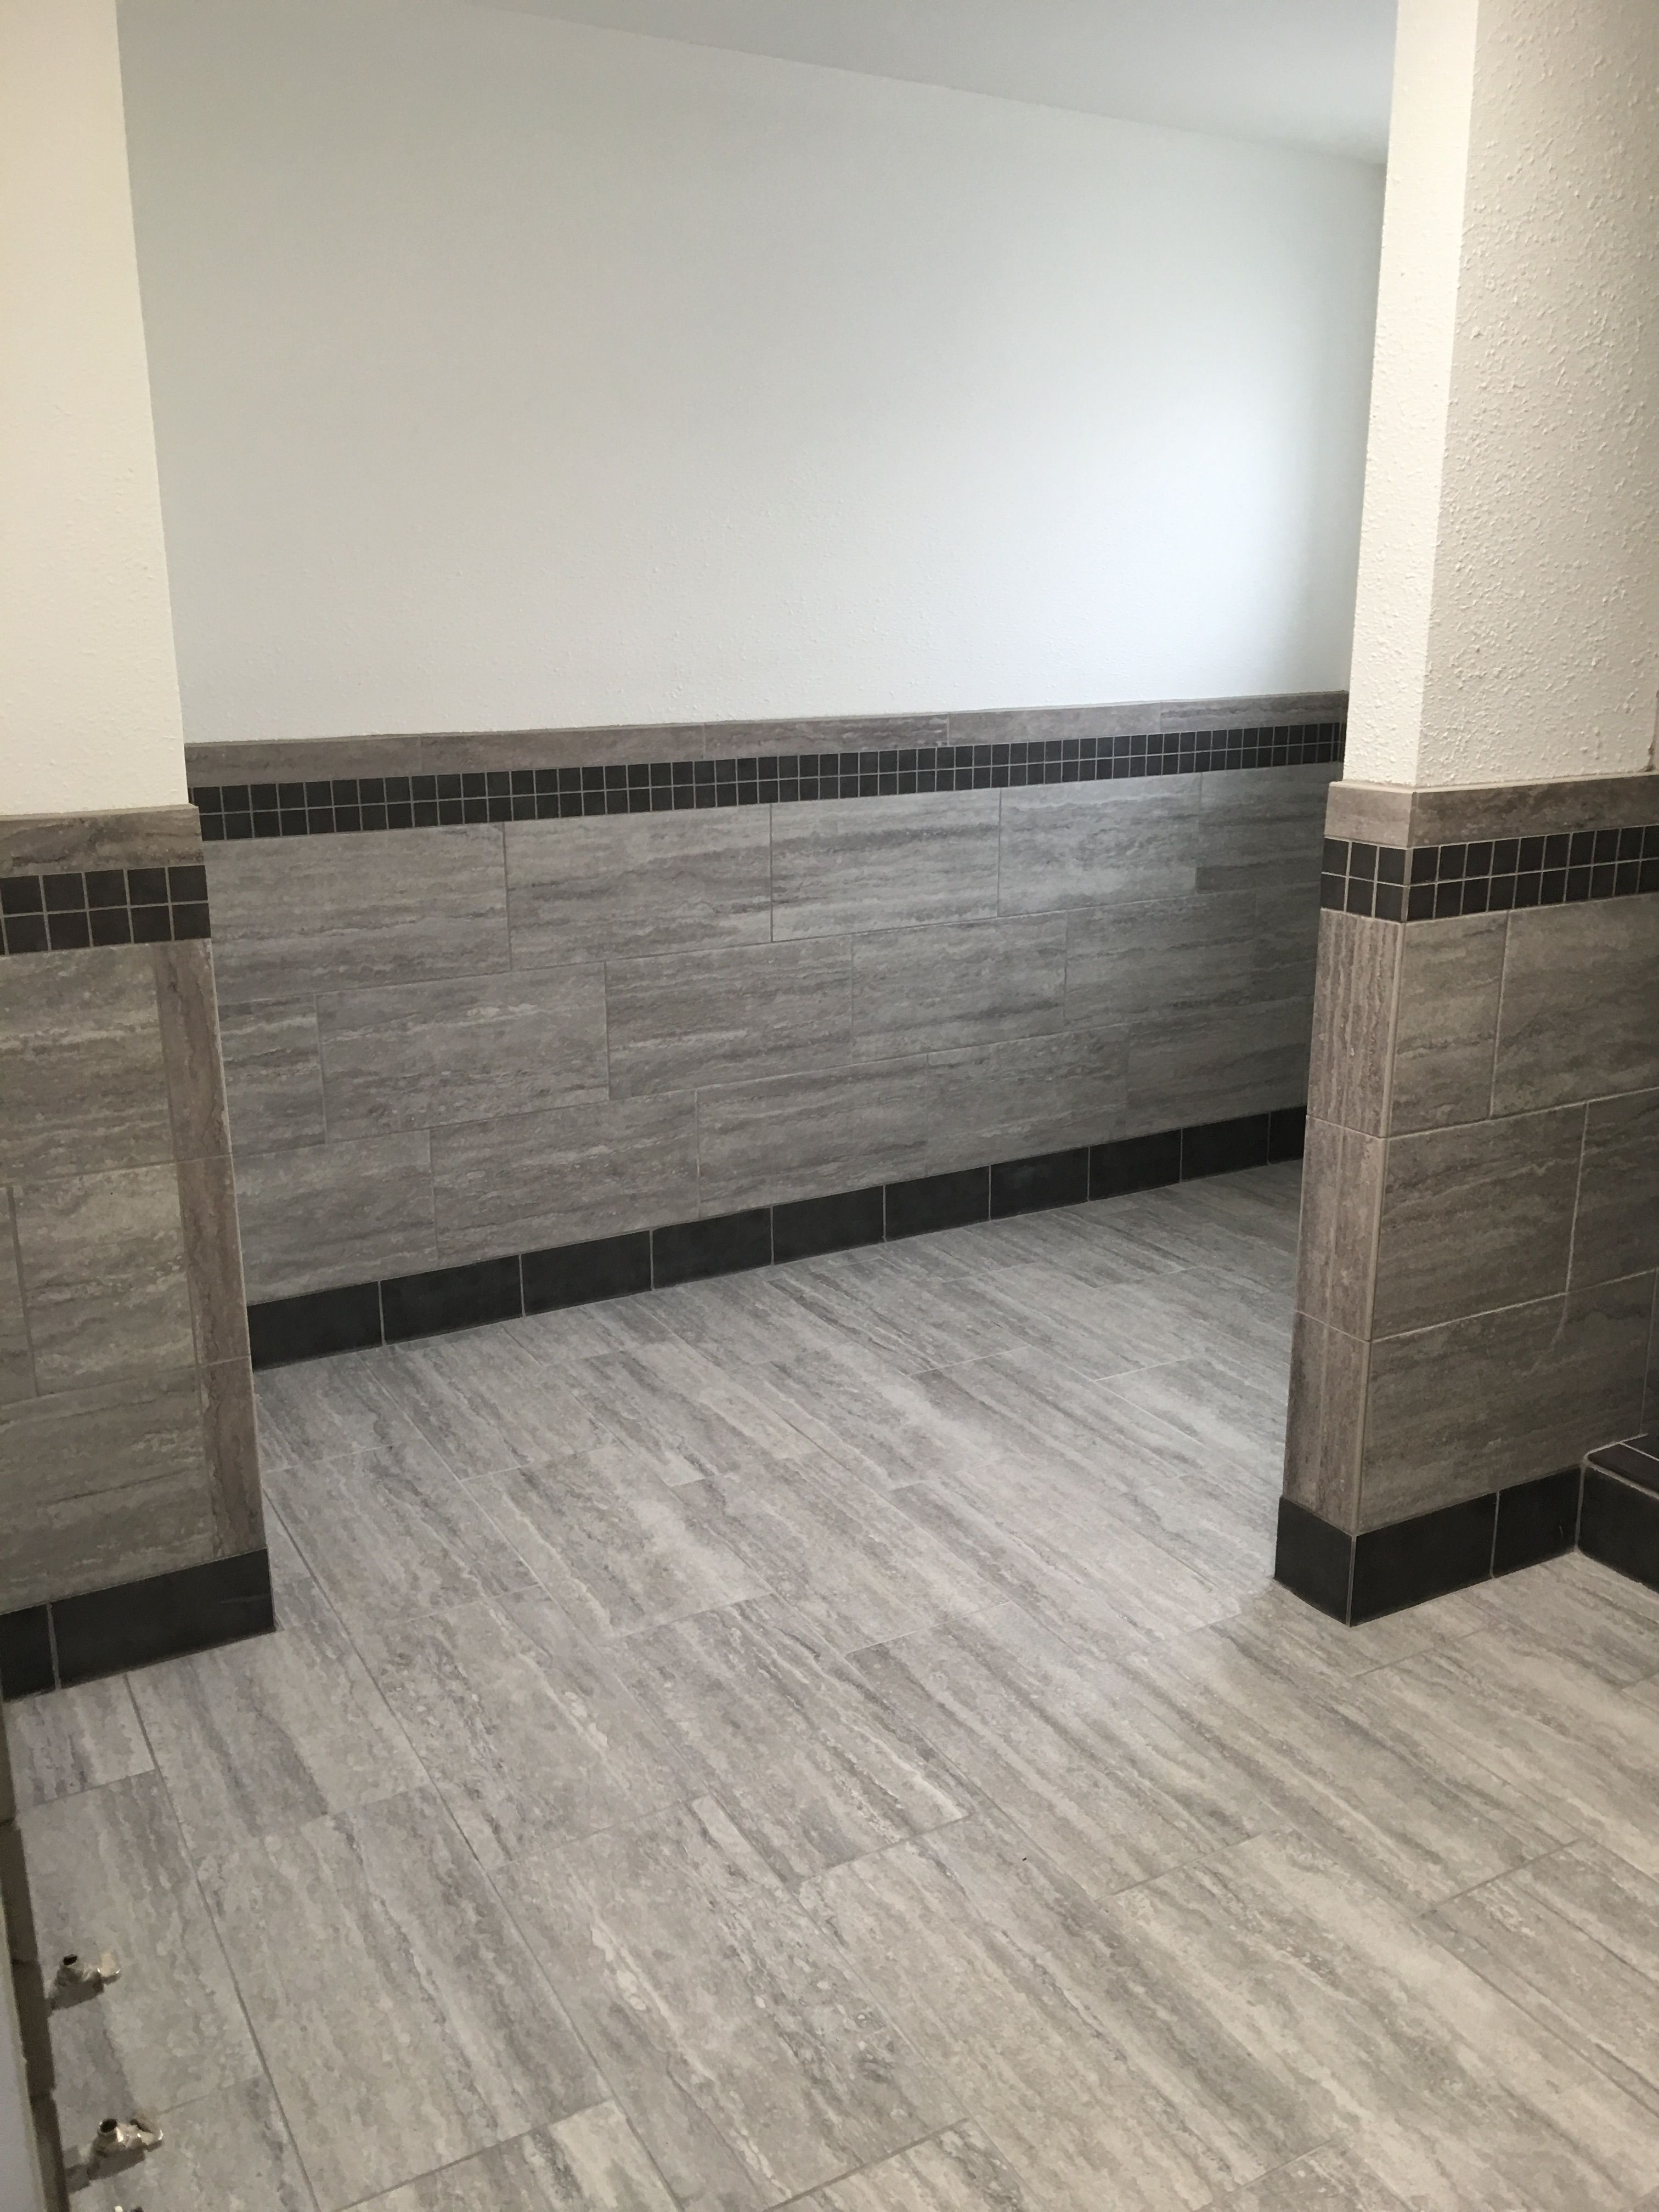 Commercial bathroom | Commercial bathroom ideas ...